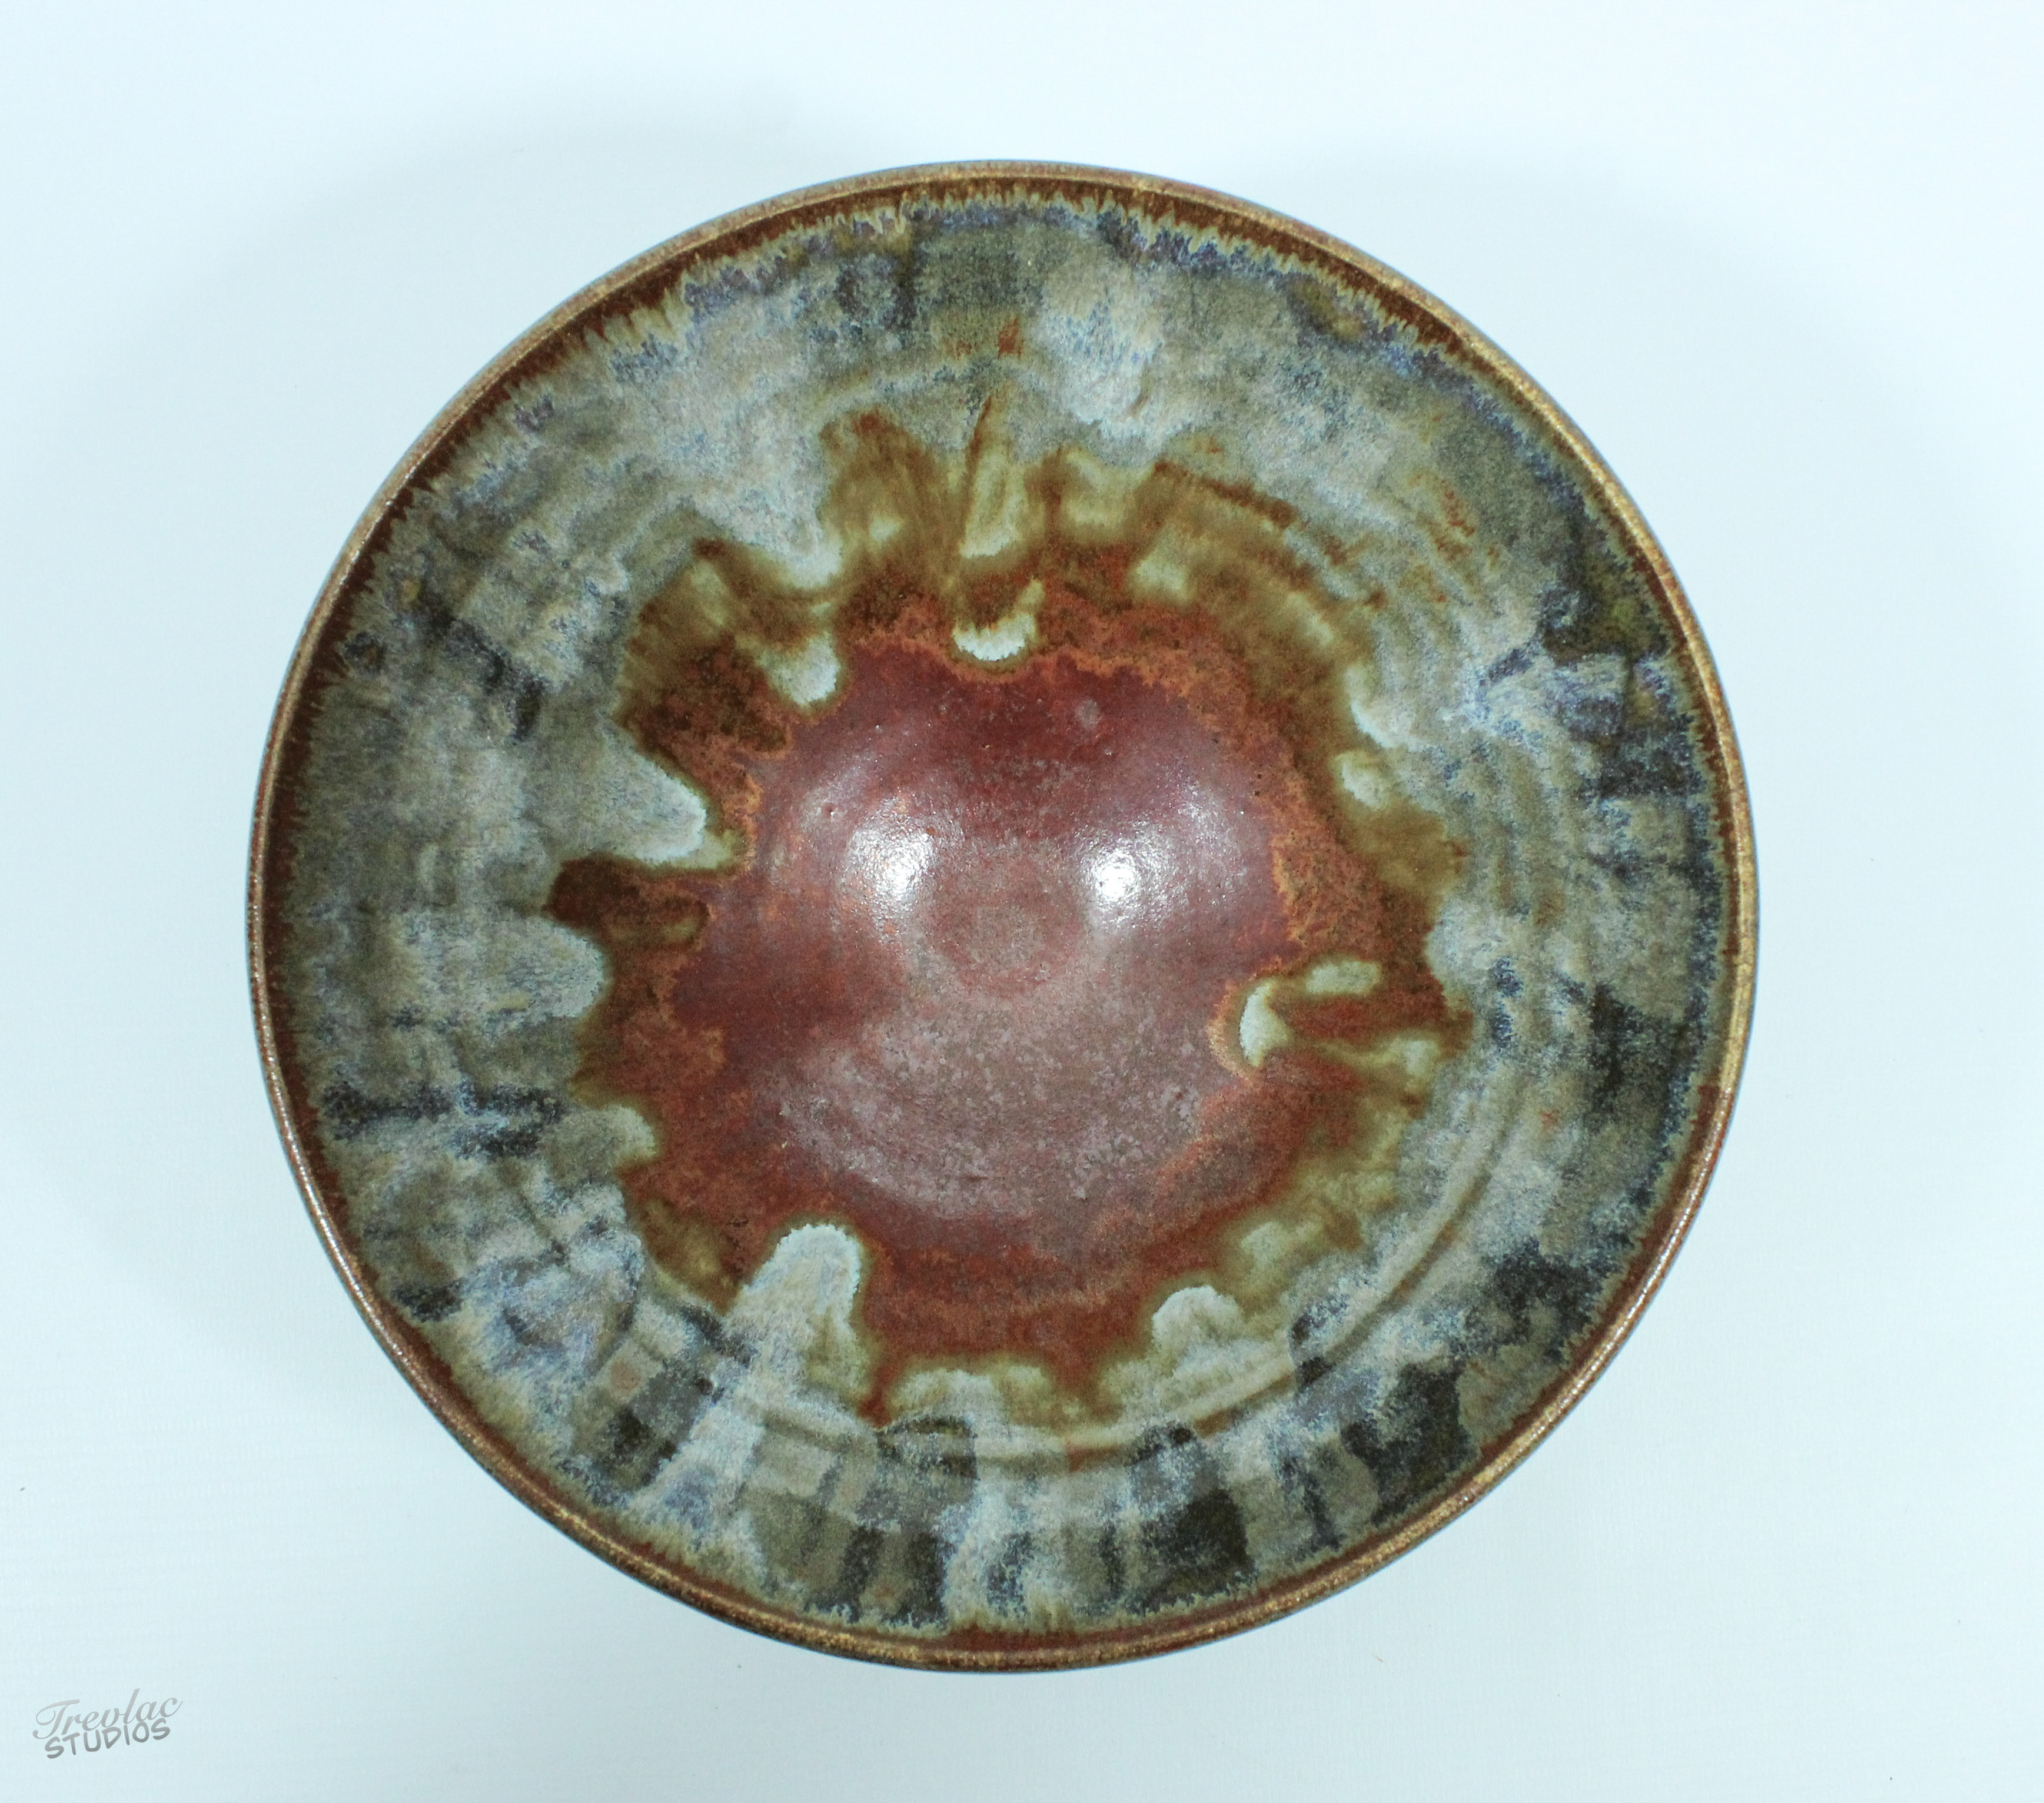 Peter White Bronze Bowl Woburn Sands Clay The Great Pottery Throw Down